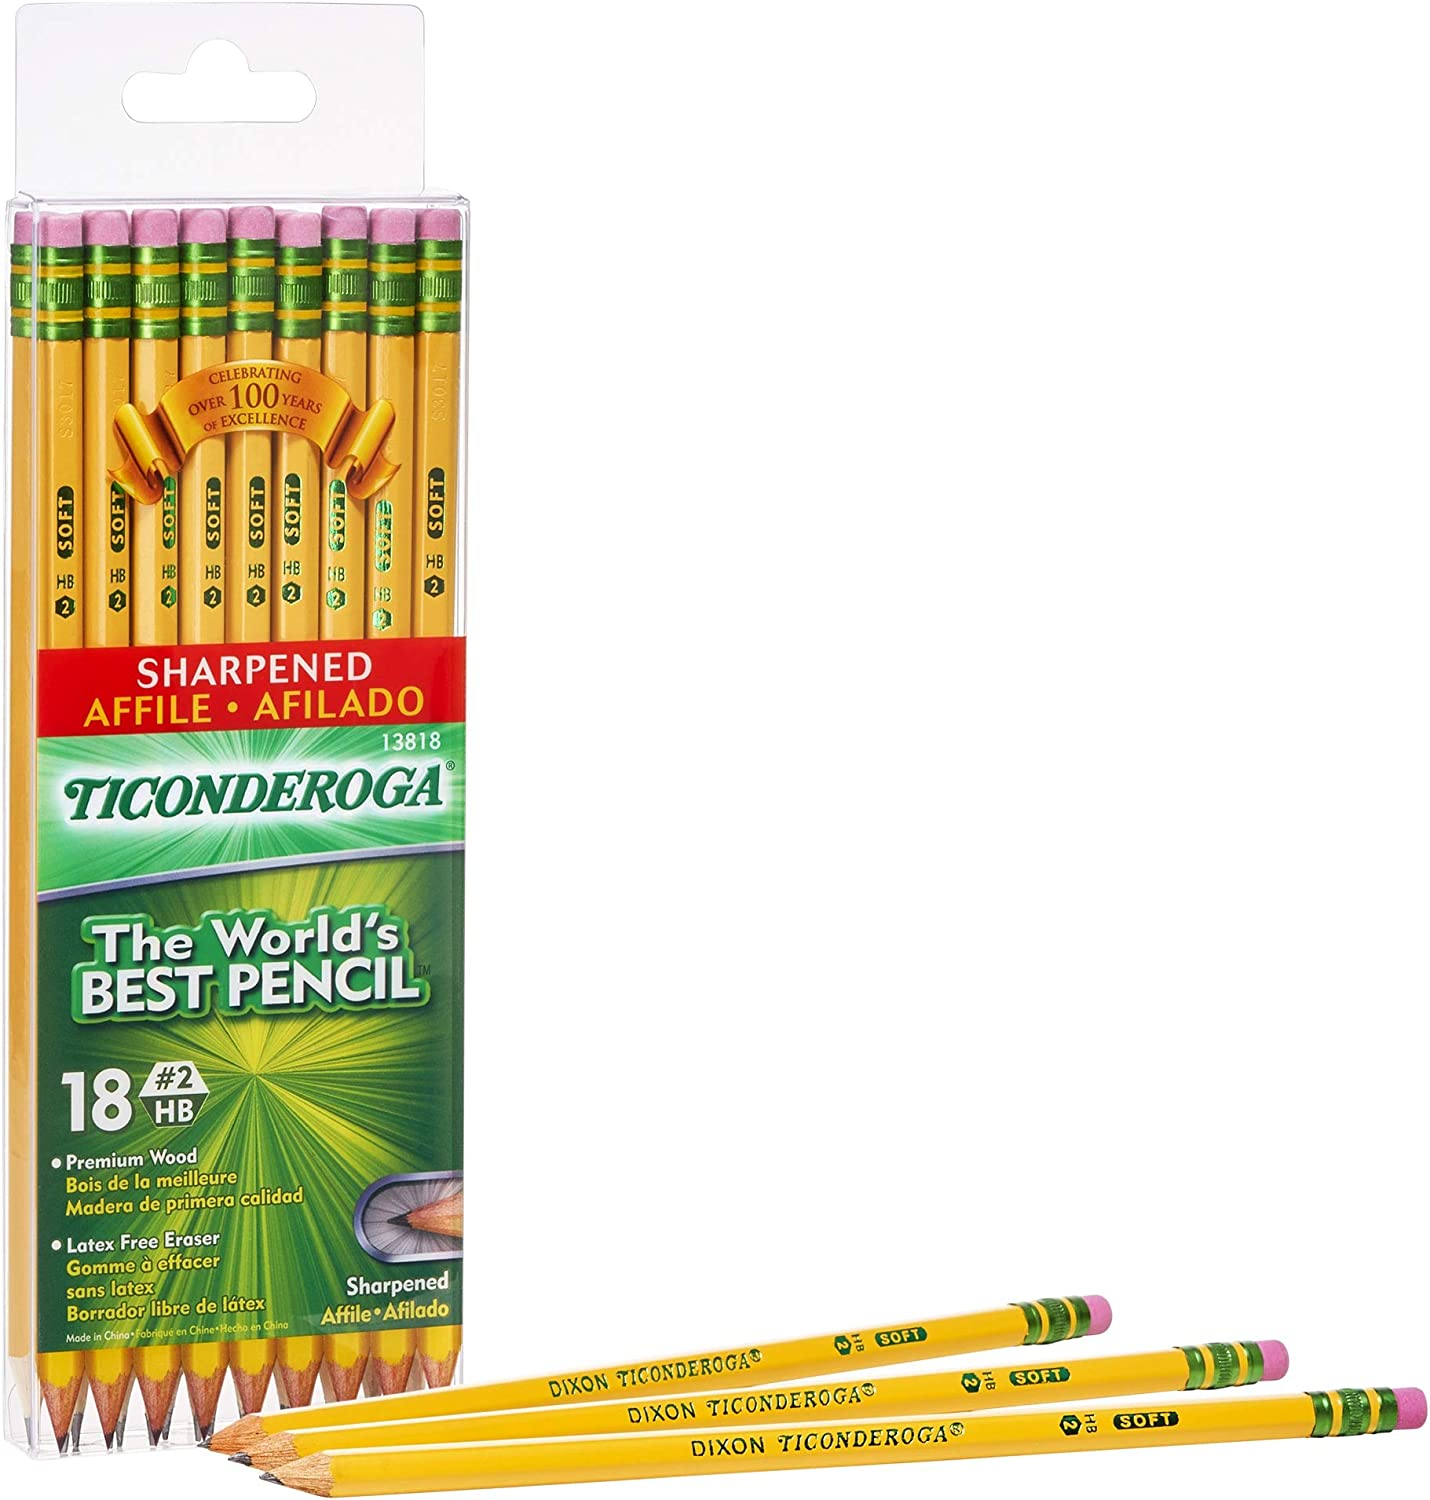 Wood-Cased #2 HB Soft TICONDEROGA Pencils 7 Yellow Pre-Sharpened with Eraser